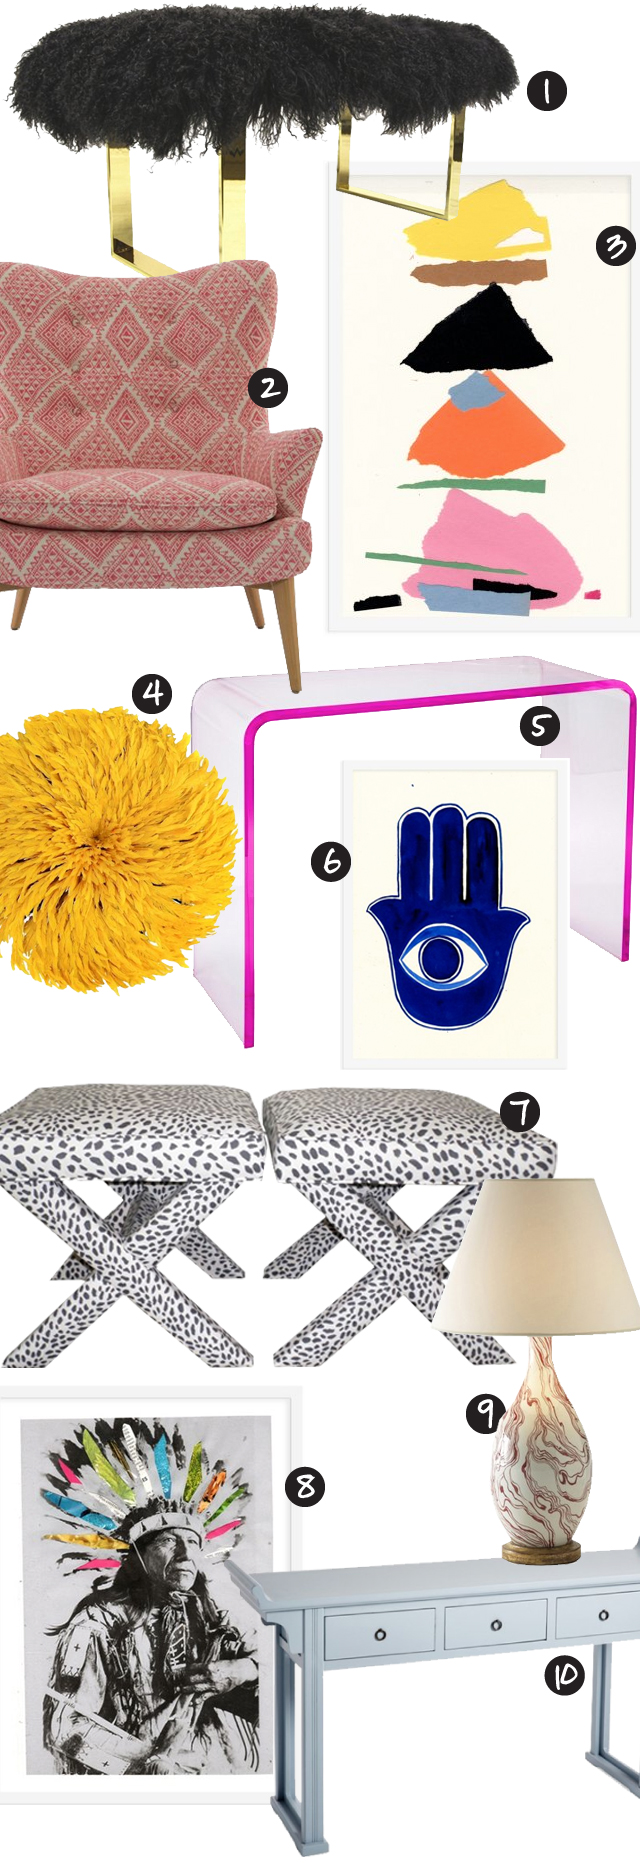 entry-pieces-decorating